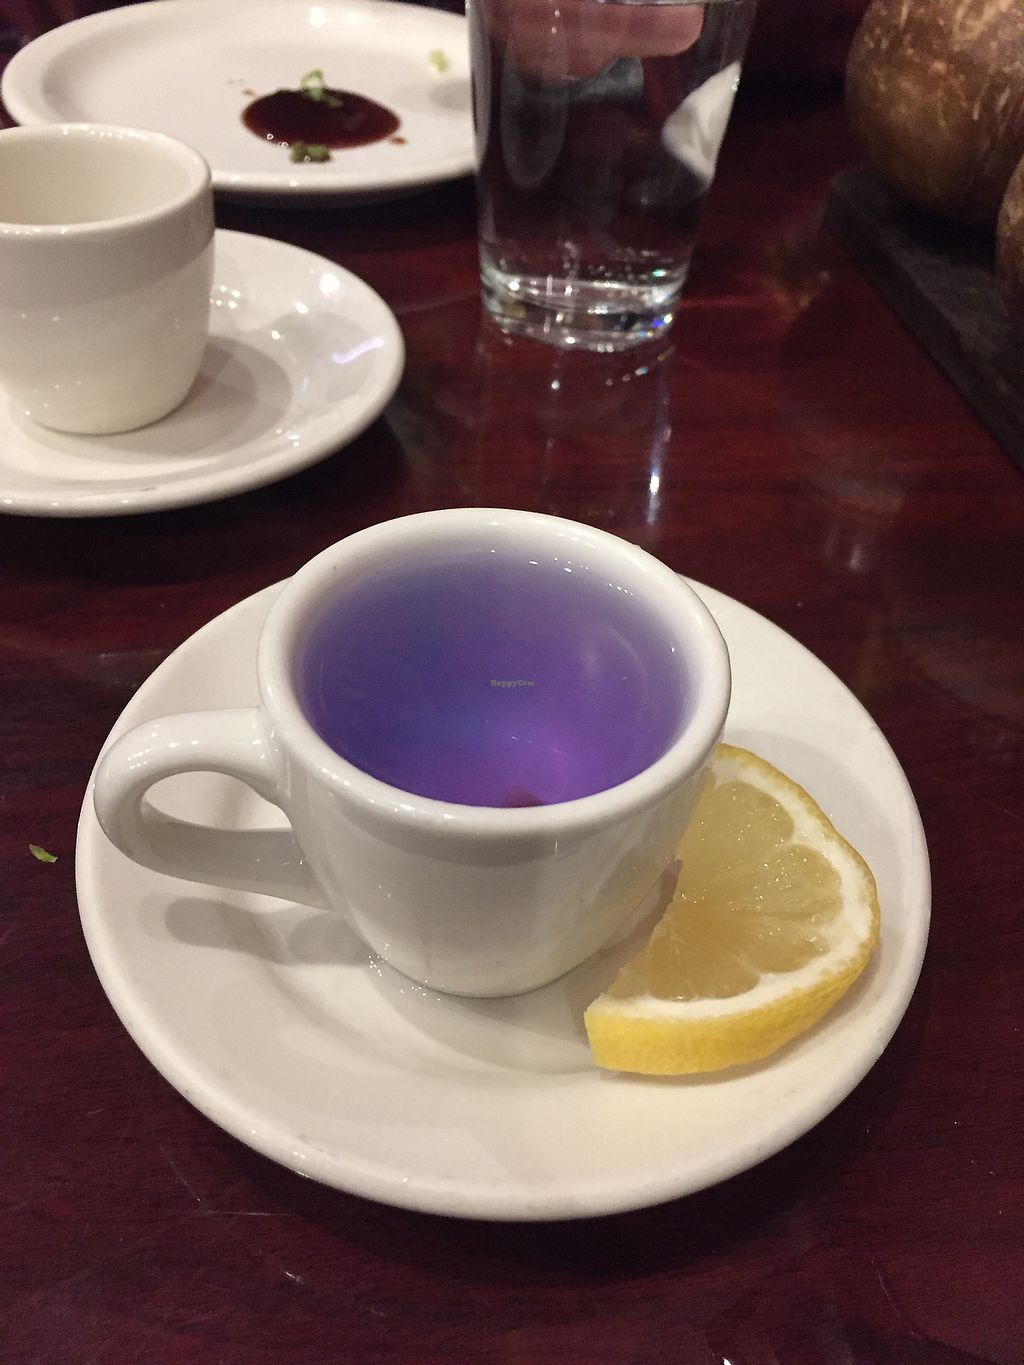 """Photo of Thai Vegan - Nob Hill  by <a href=""""/members/profile/chris1"""">chris1</a> <br/>Purple tea <br/> December 9, 2017  - <a href='/contact/abuse/image/35625/333770'>Report</a>"""